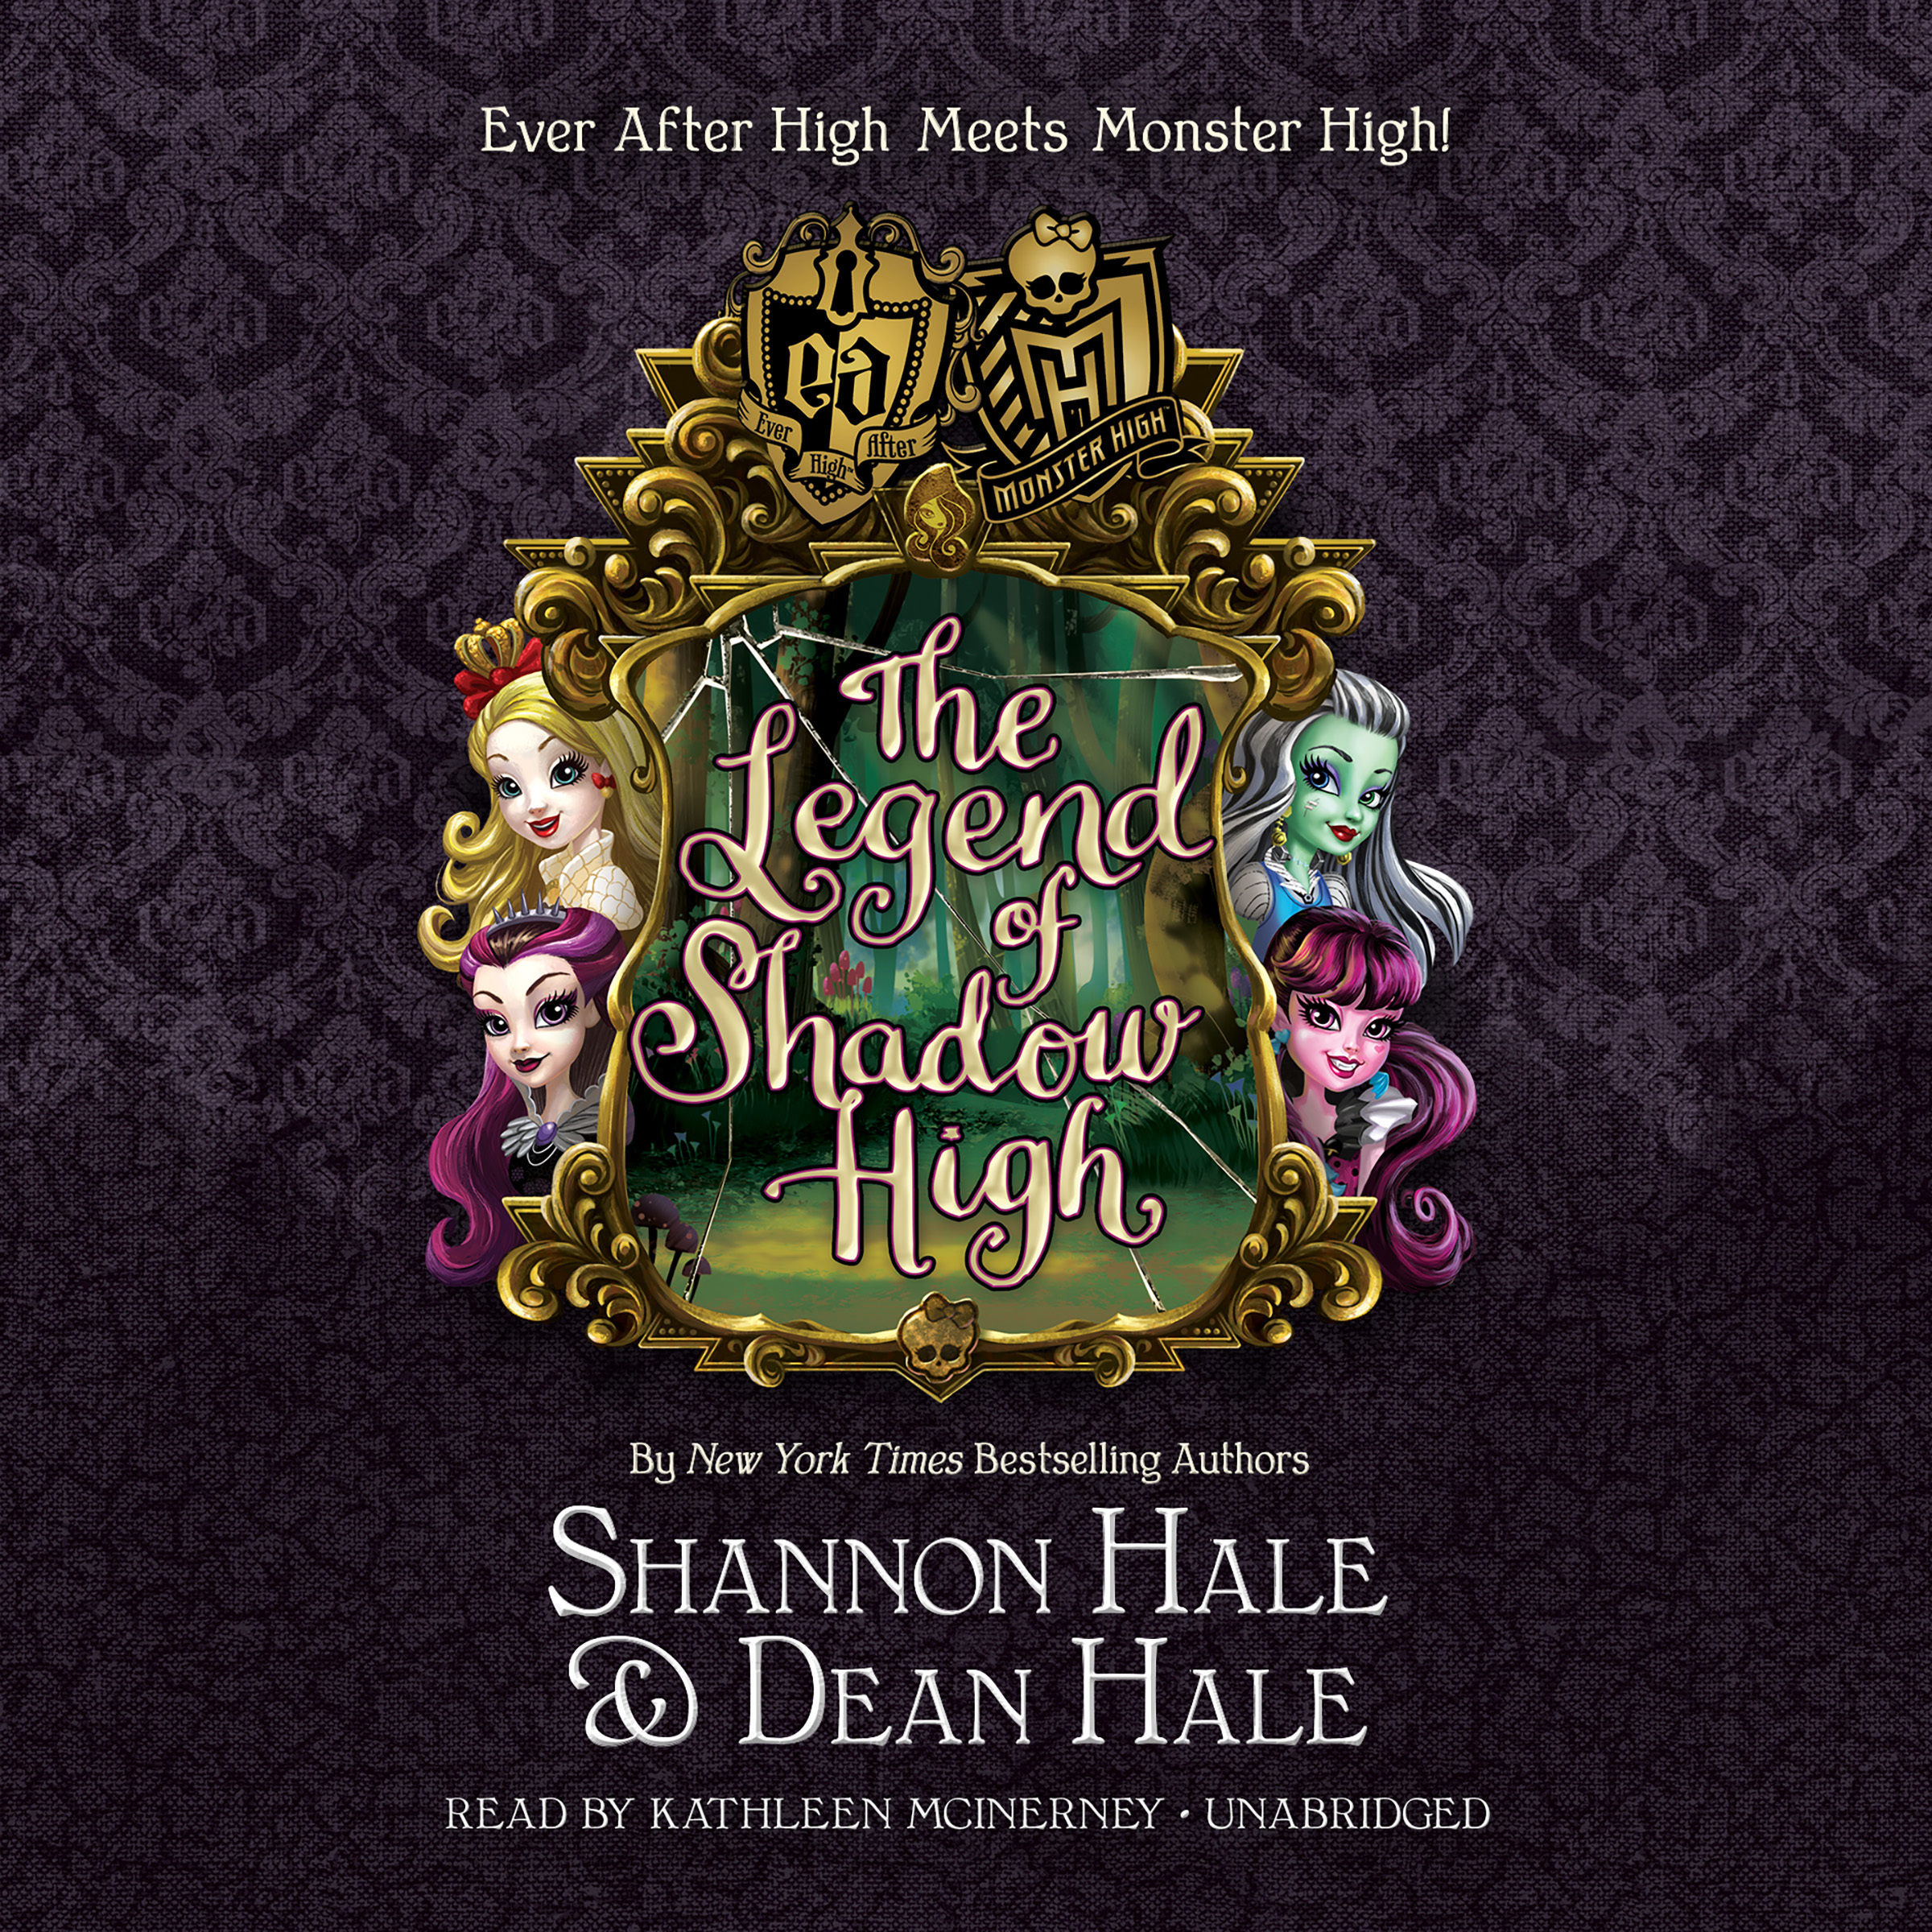 Printable Monster High / Ever After High: The Legend of Shadow High Audiobook Cover Art